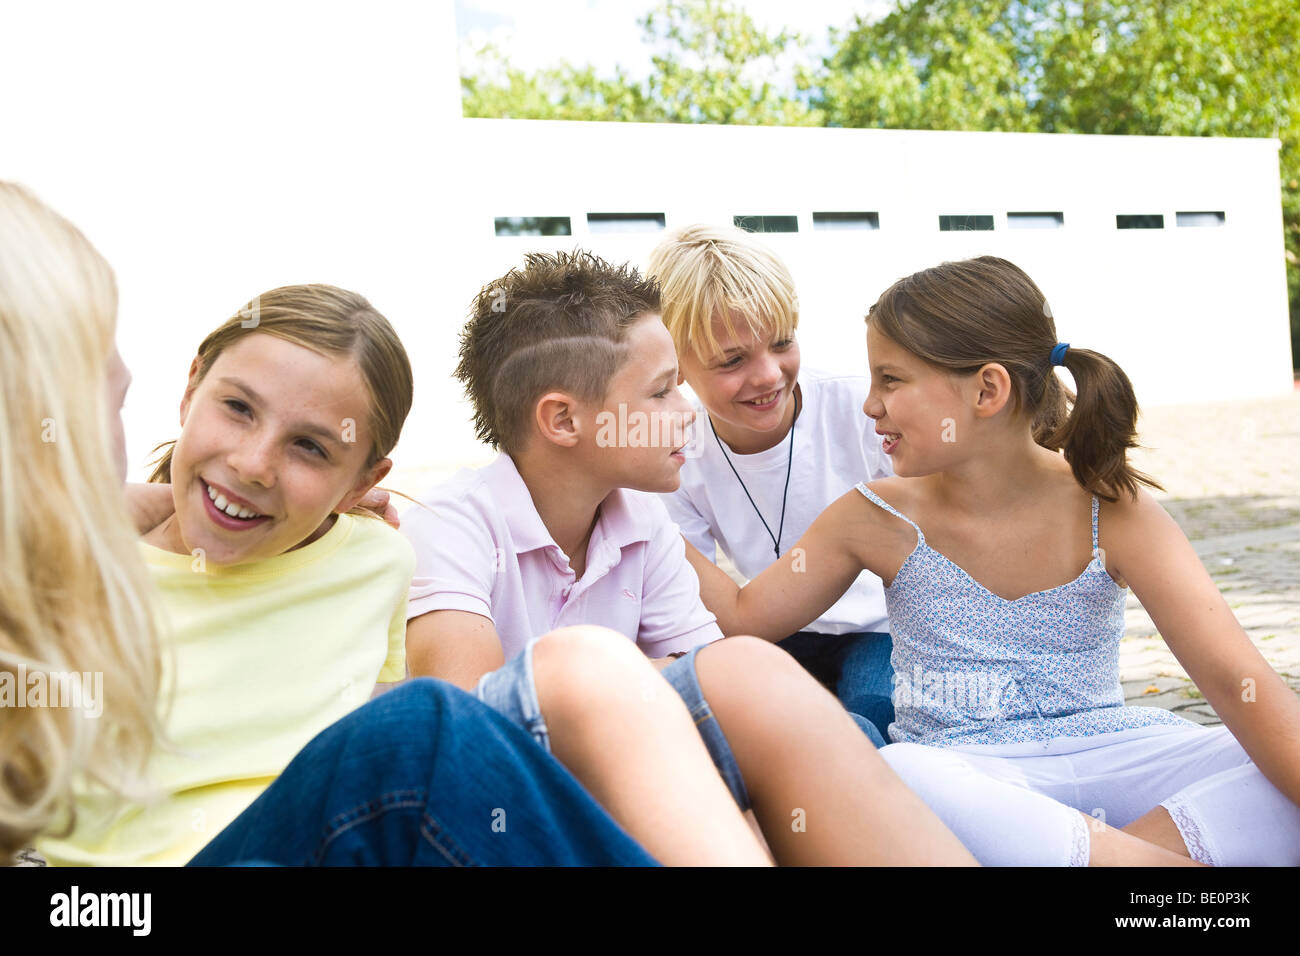 Five pupils talking in the schoolyard - Stock Image